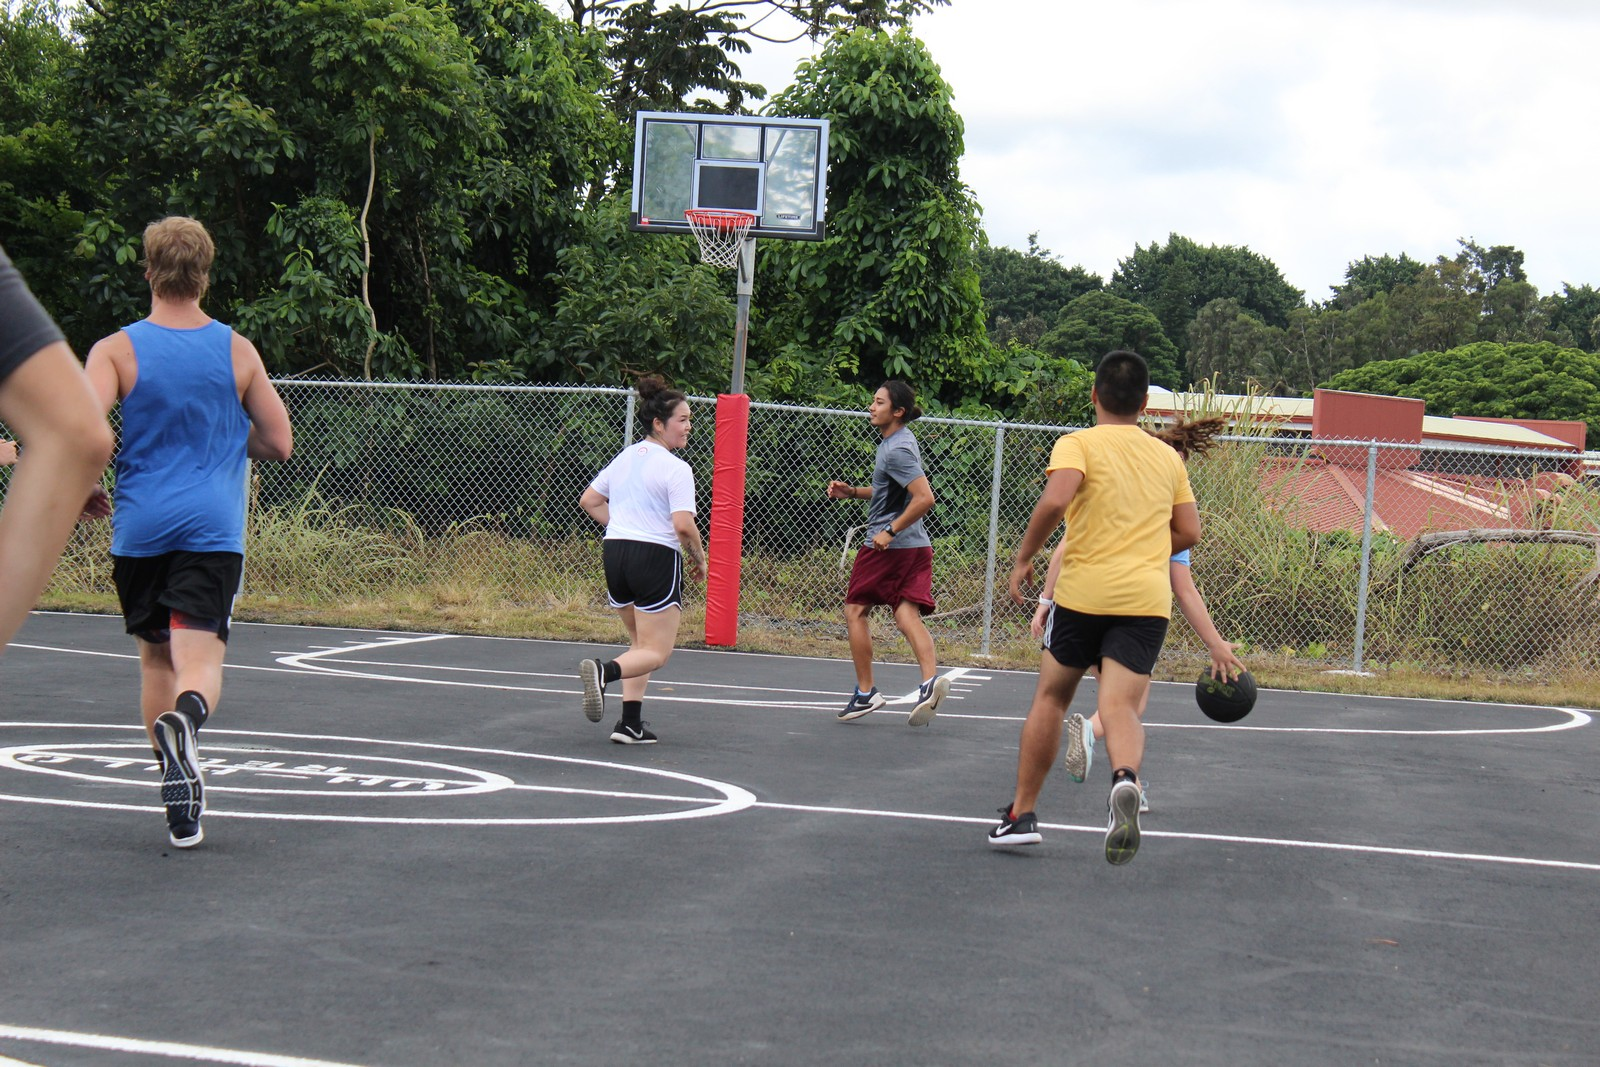 Group playing hoops.